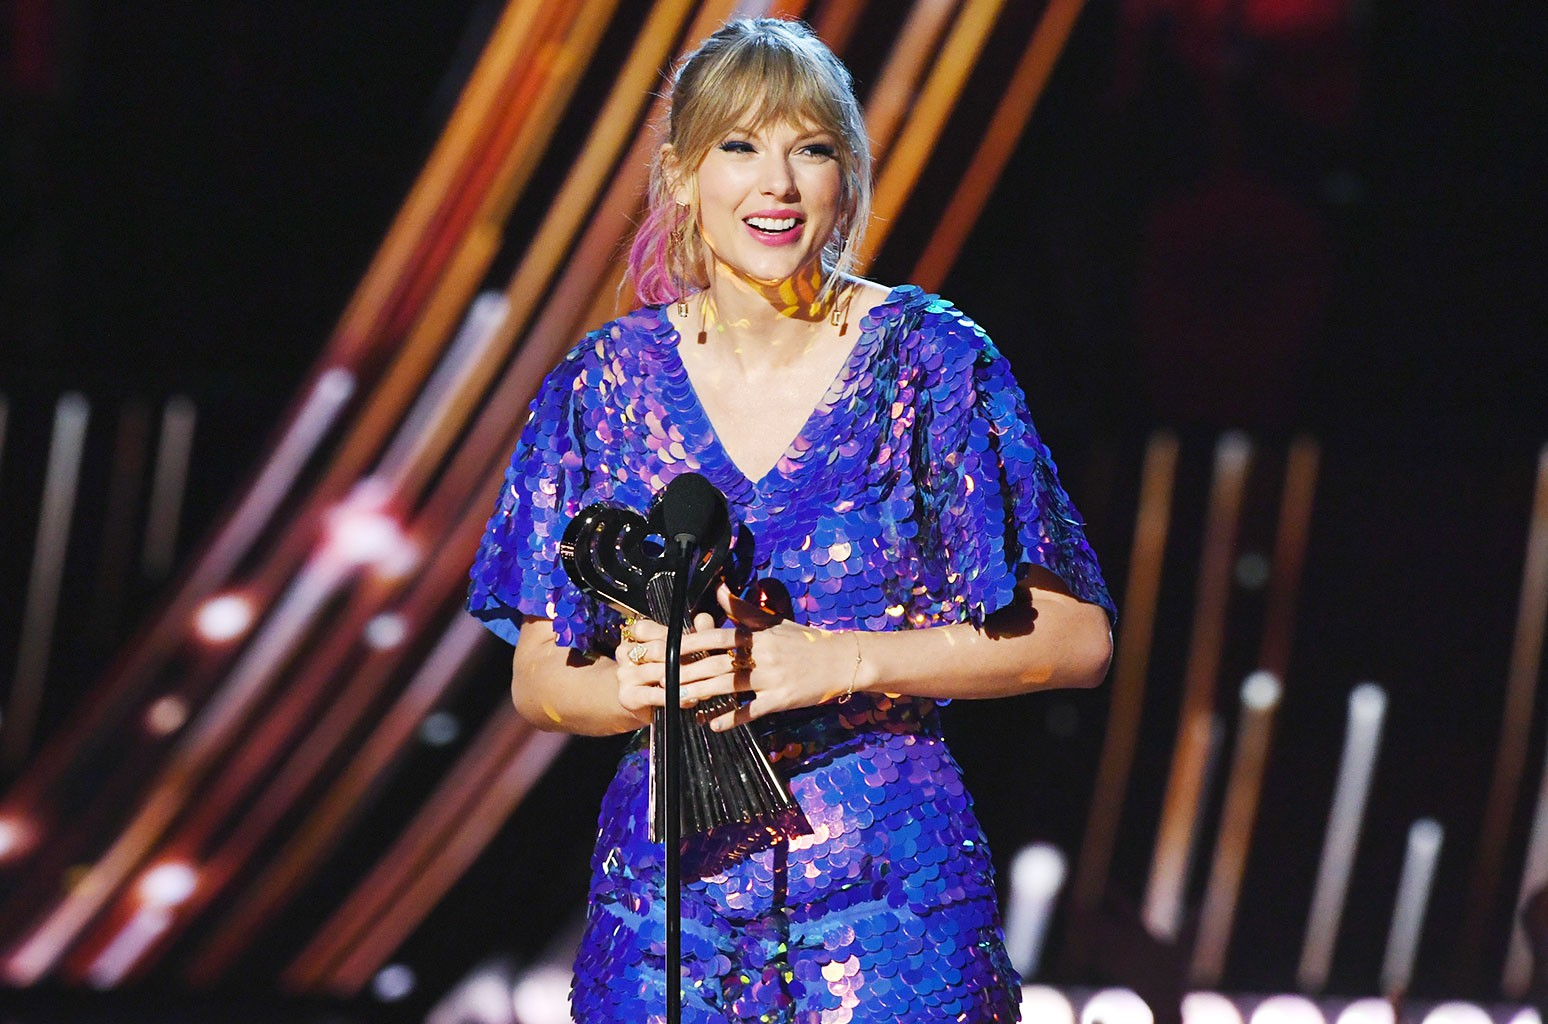 Taylor Swift Accepts Tour Of The Year At Iheartradio Music Awards Read The Full Speech Billboard